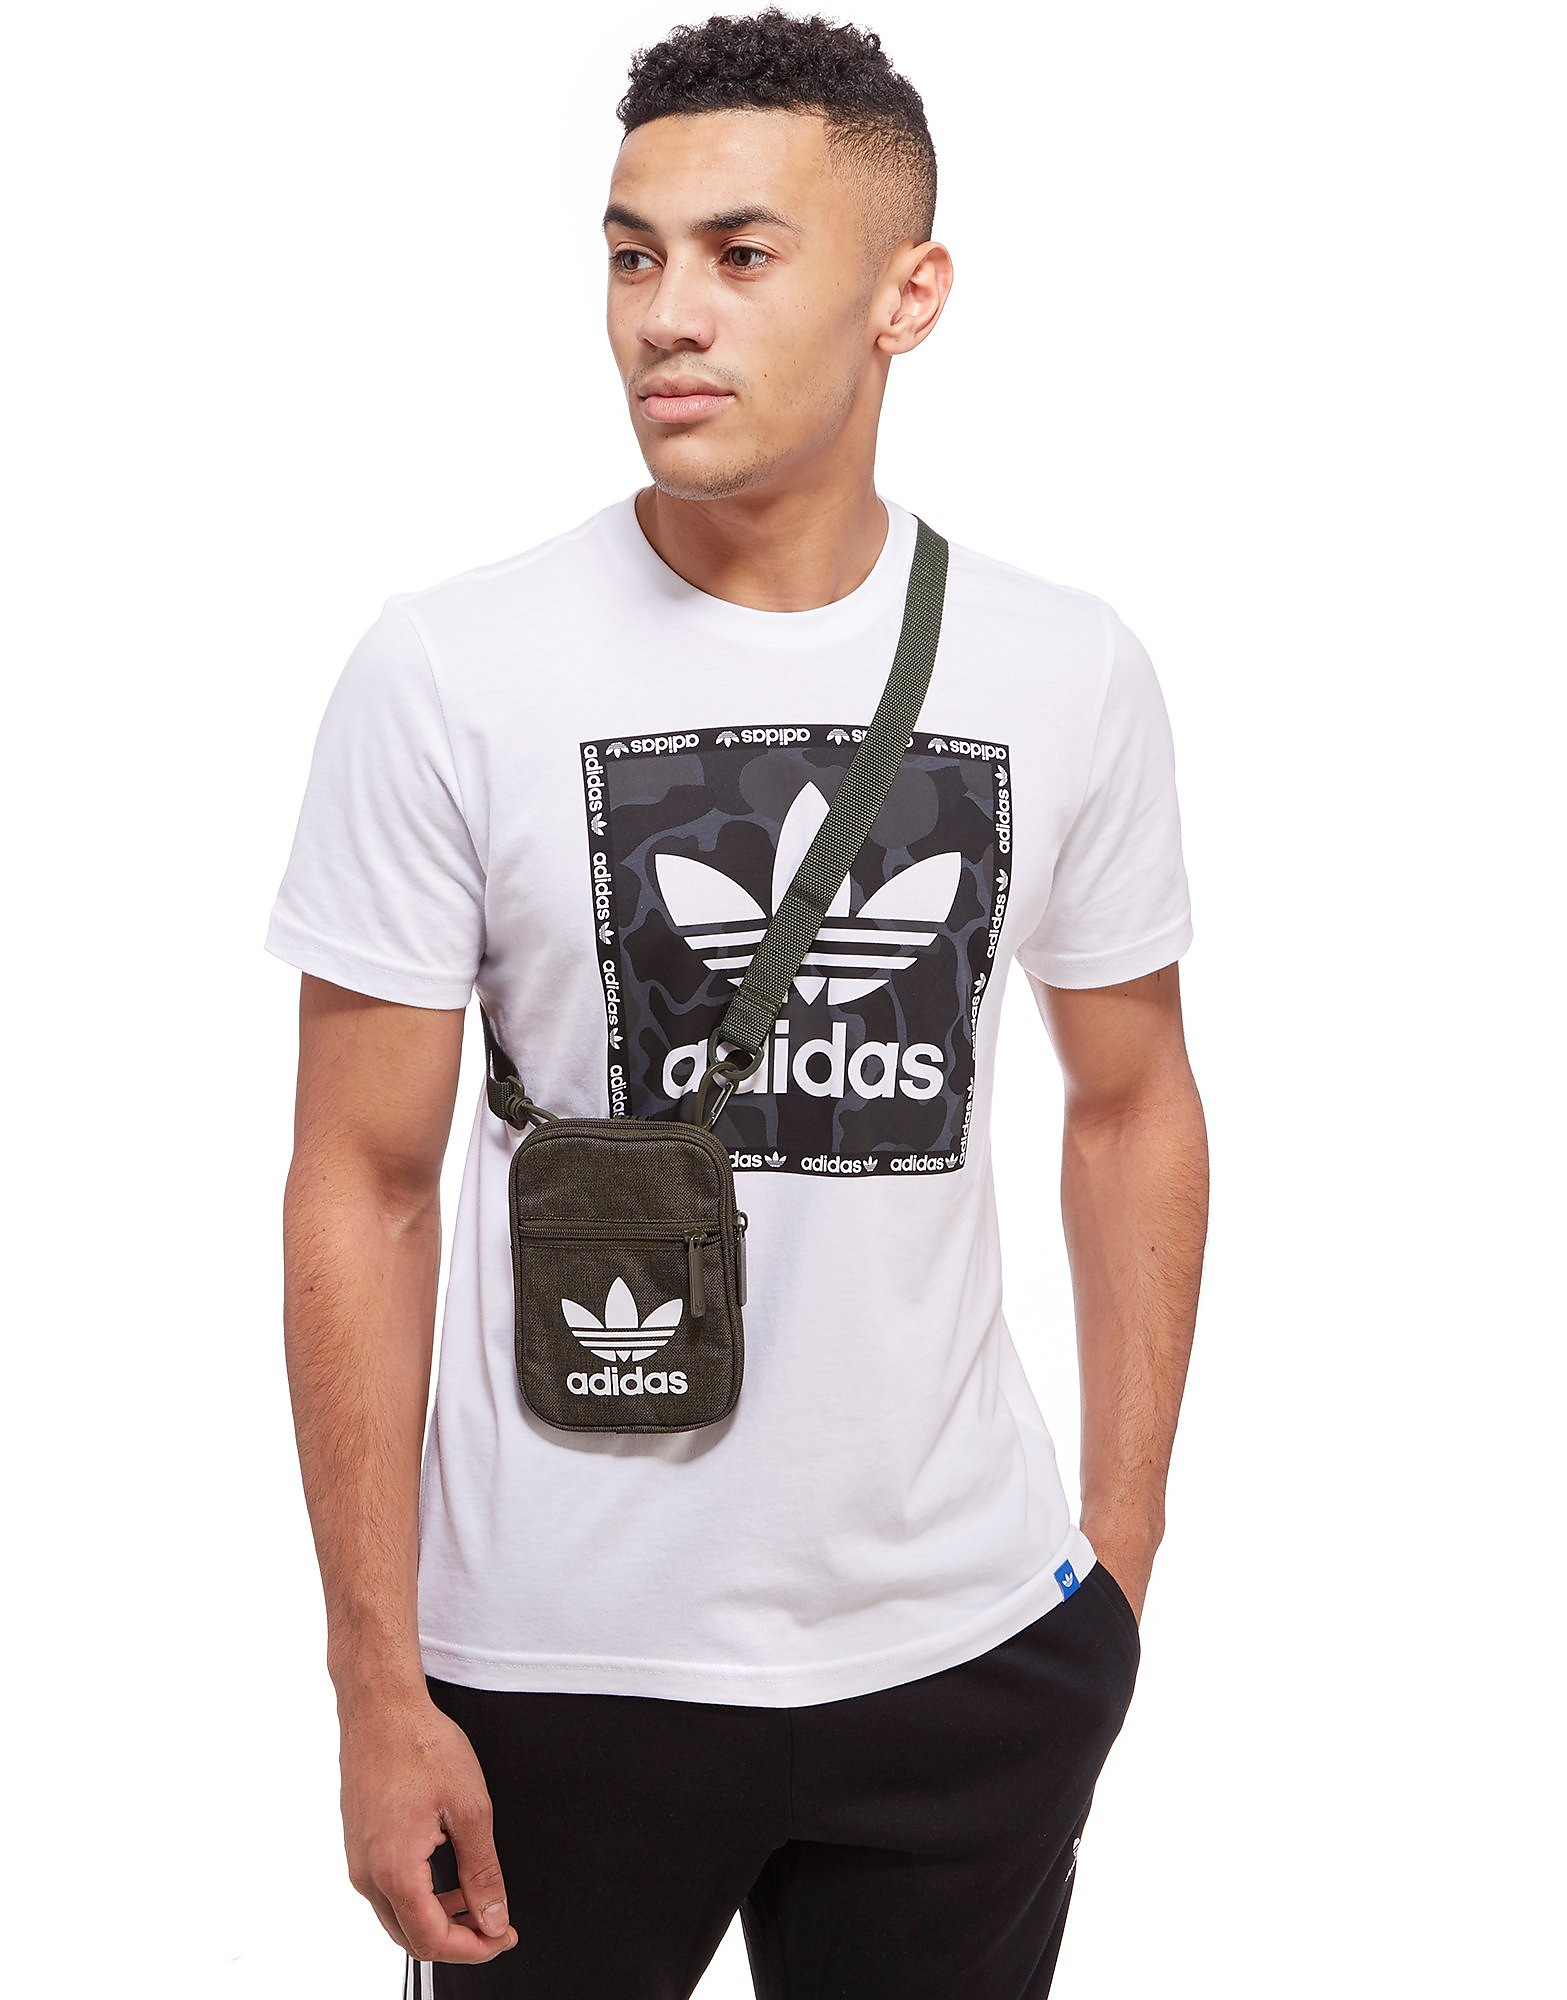 adidas Originals Festival Small Items Bag